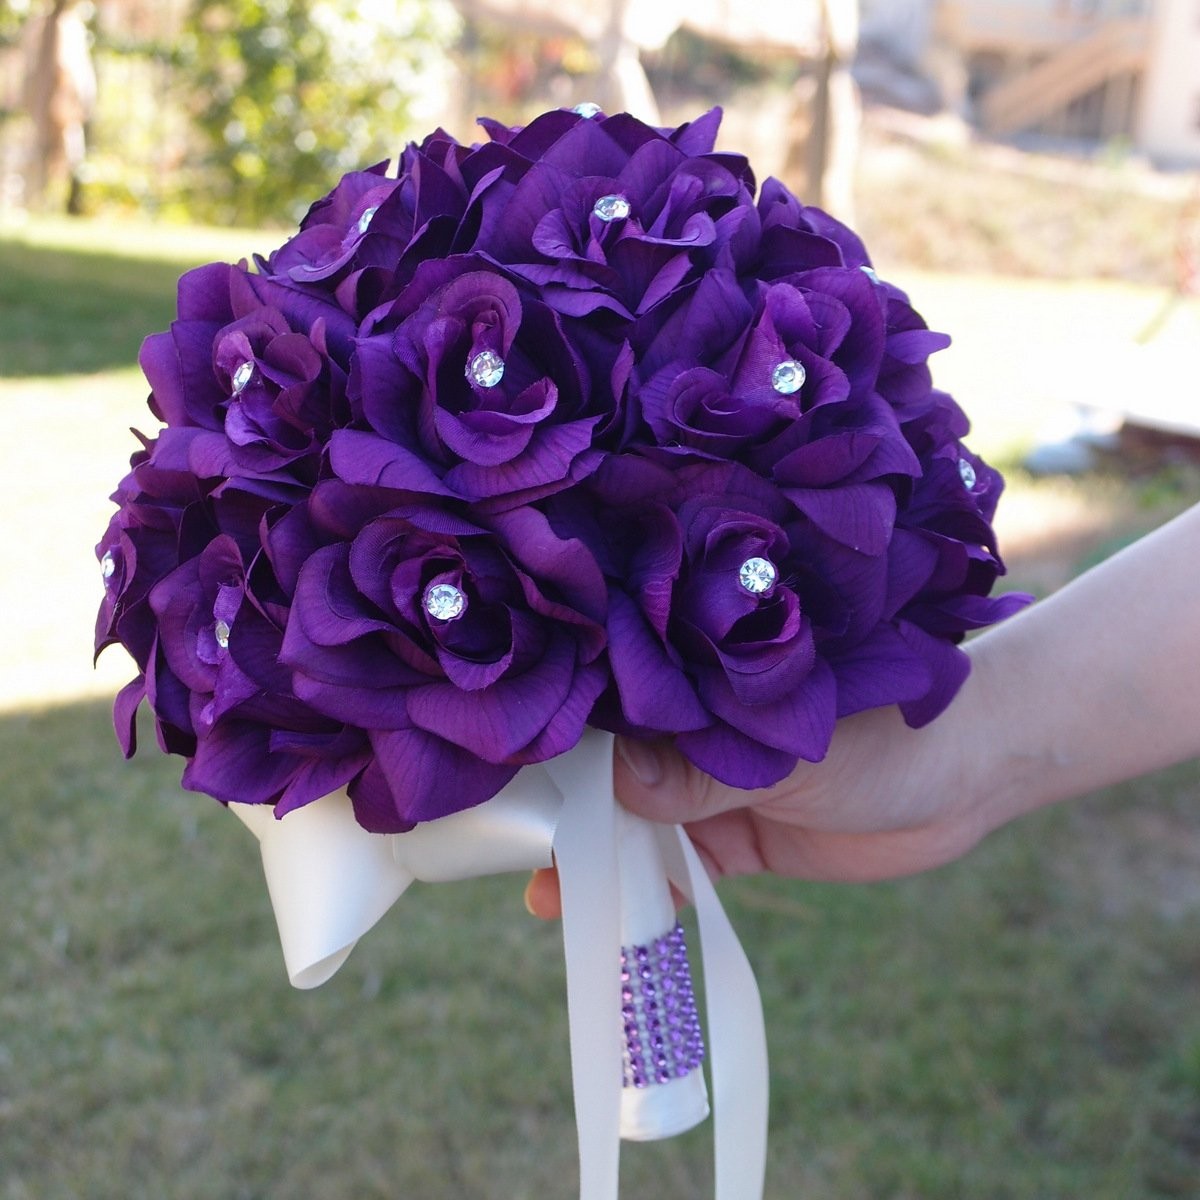 Amazon.com: Purple Roses Bridal Wedding Bouquet with Ivory Stain ...